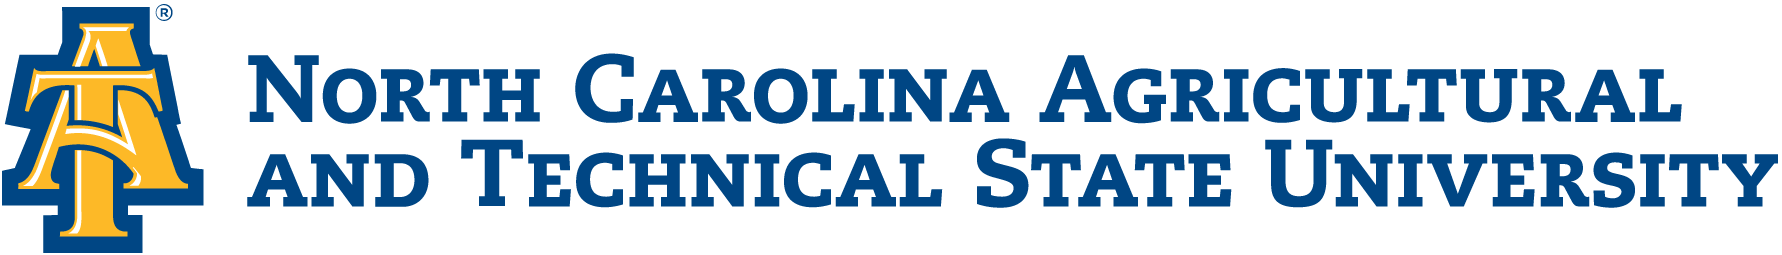 North Carolina Agricultural and Technical State University Logo